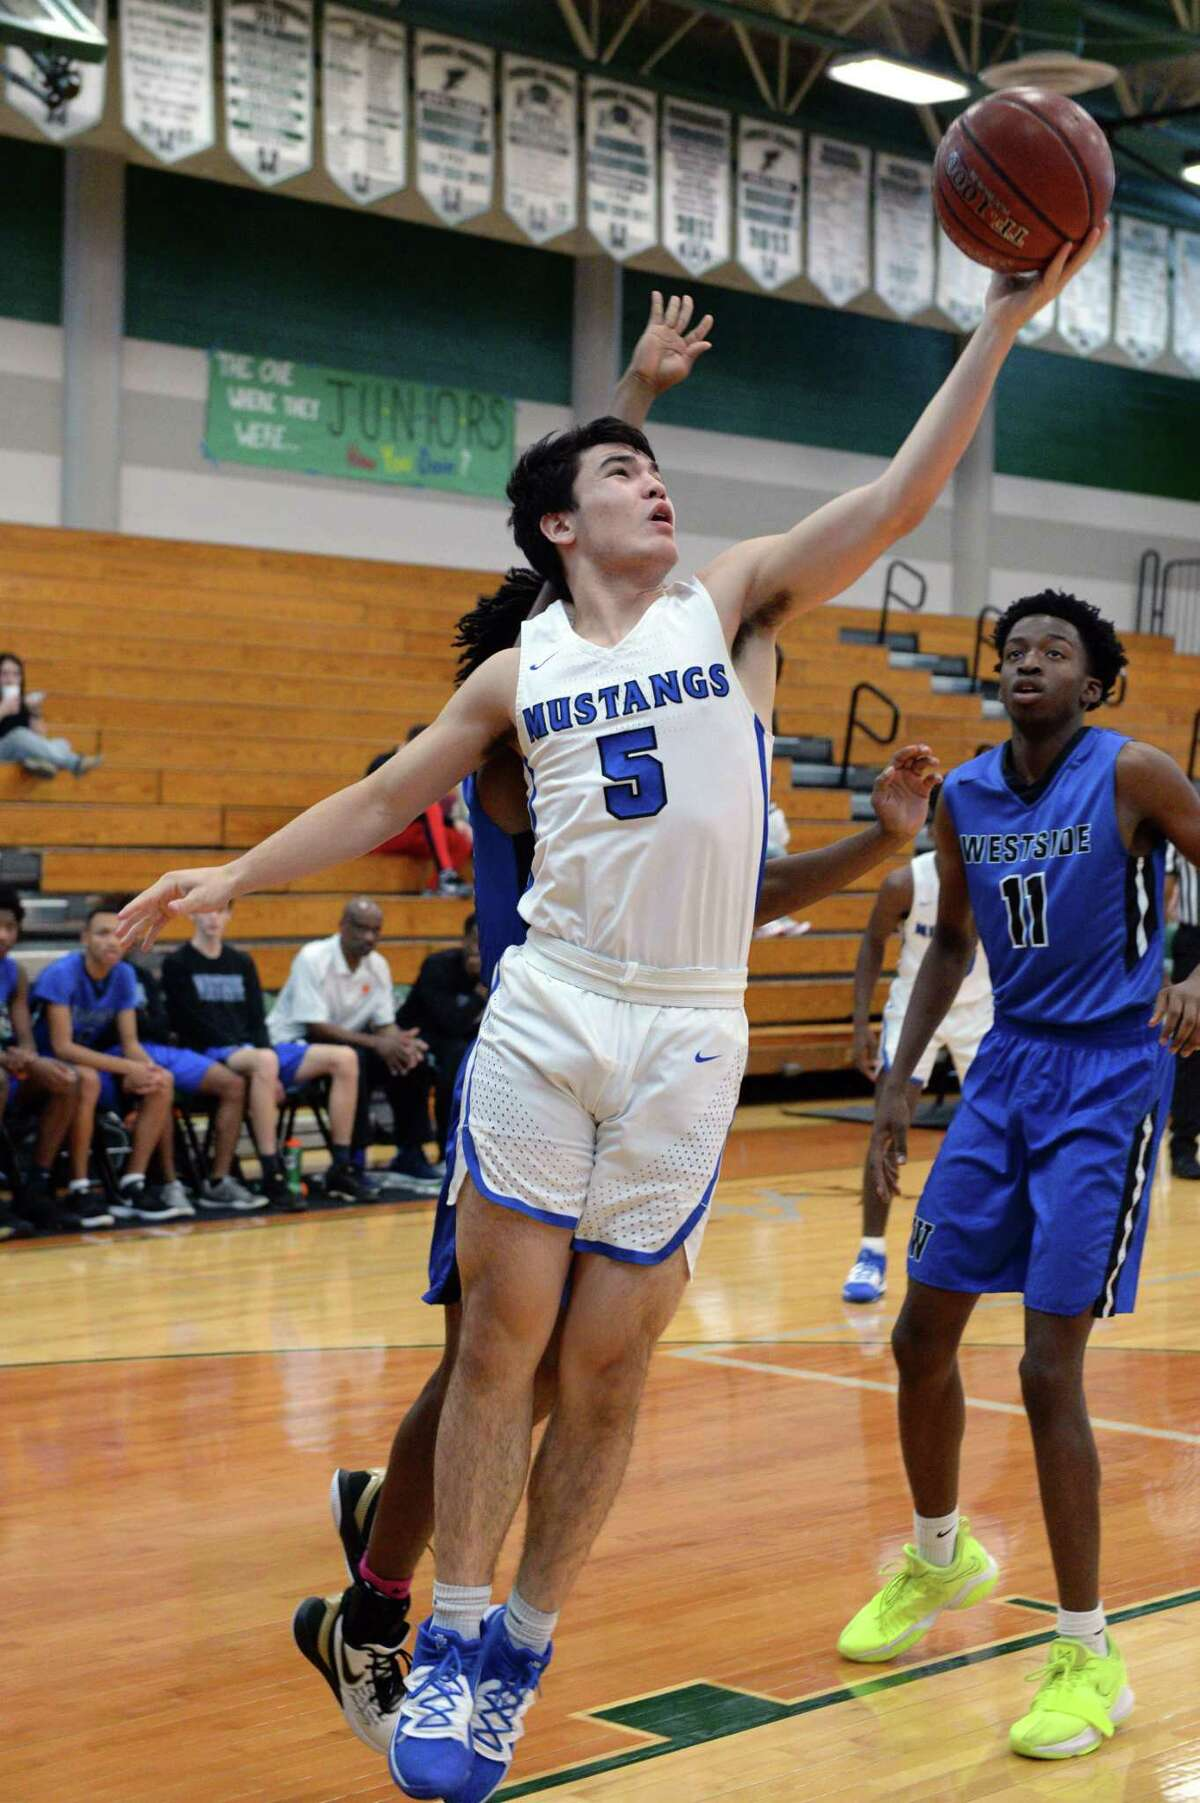 Jake Arnold (5) of Taylor attempts a lay-up during pool play of the Katy Classic Basketball Tournament between the Taylor Mustangs and the Westside Wolves on Thursday, December 5, 2019 at Mayde Creek HS, Houston, TX.